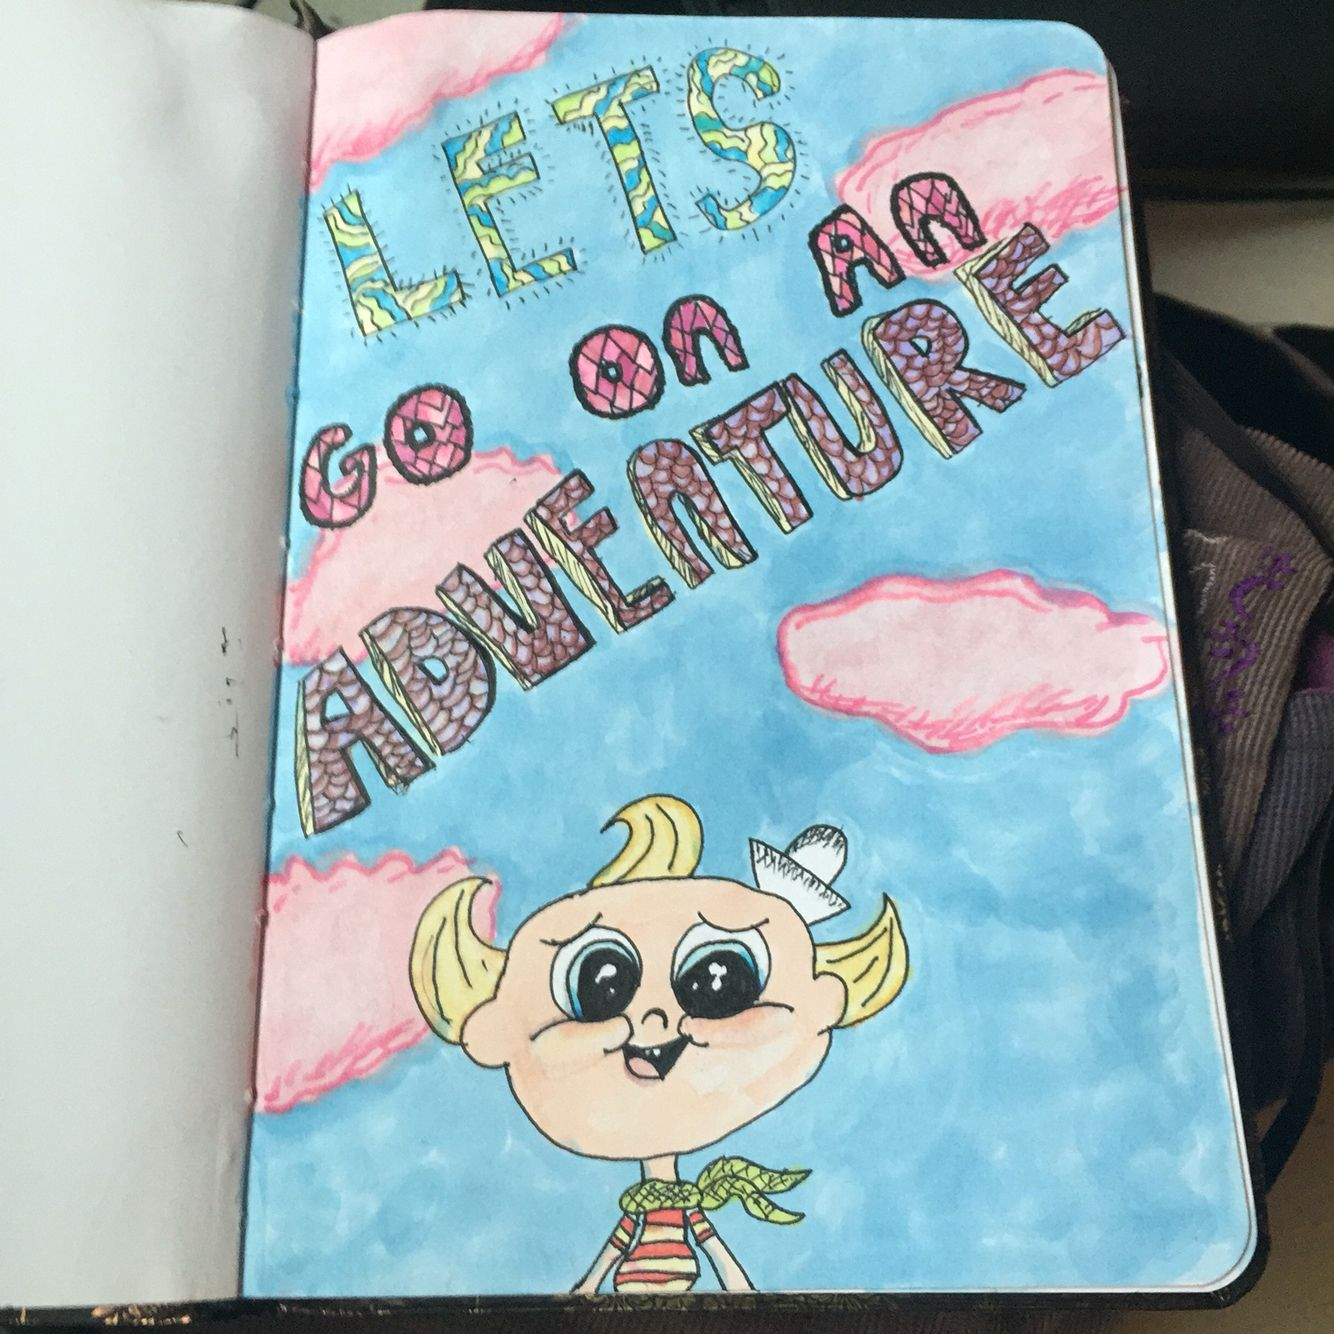 A Flapjack drawing I made I love this show. #drawing #art #flapjack #adventure #letsgoonanadventure #prismacolor #prismacolormarkers #crystalcatcreations